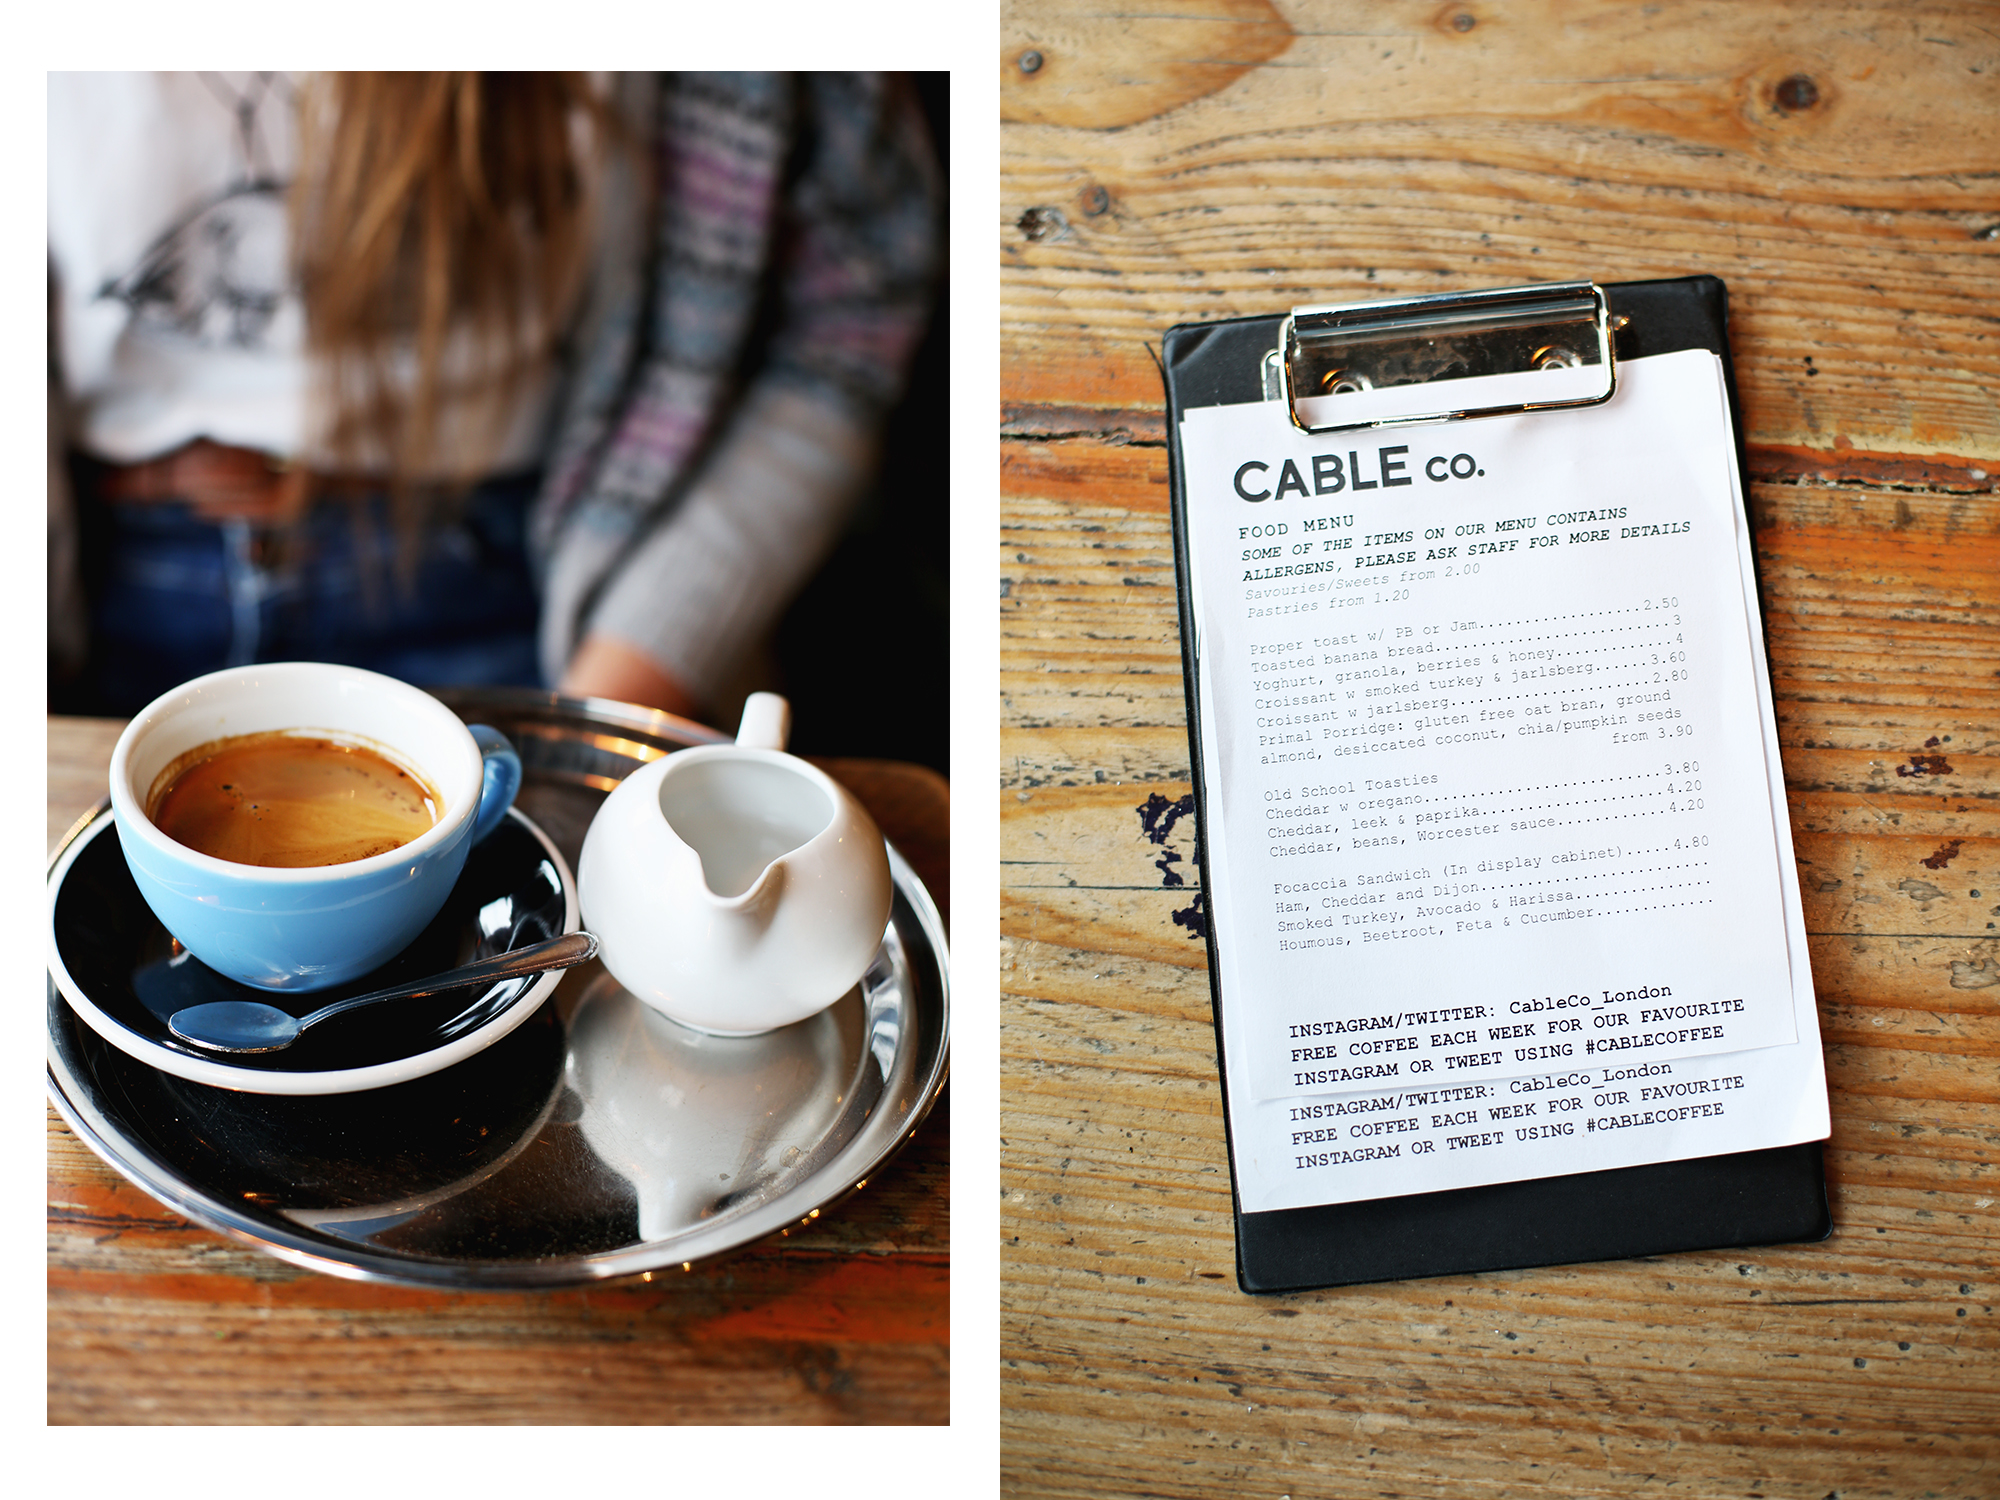 Cable Co, Kensal Rise